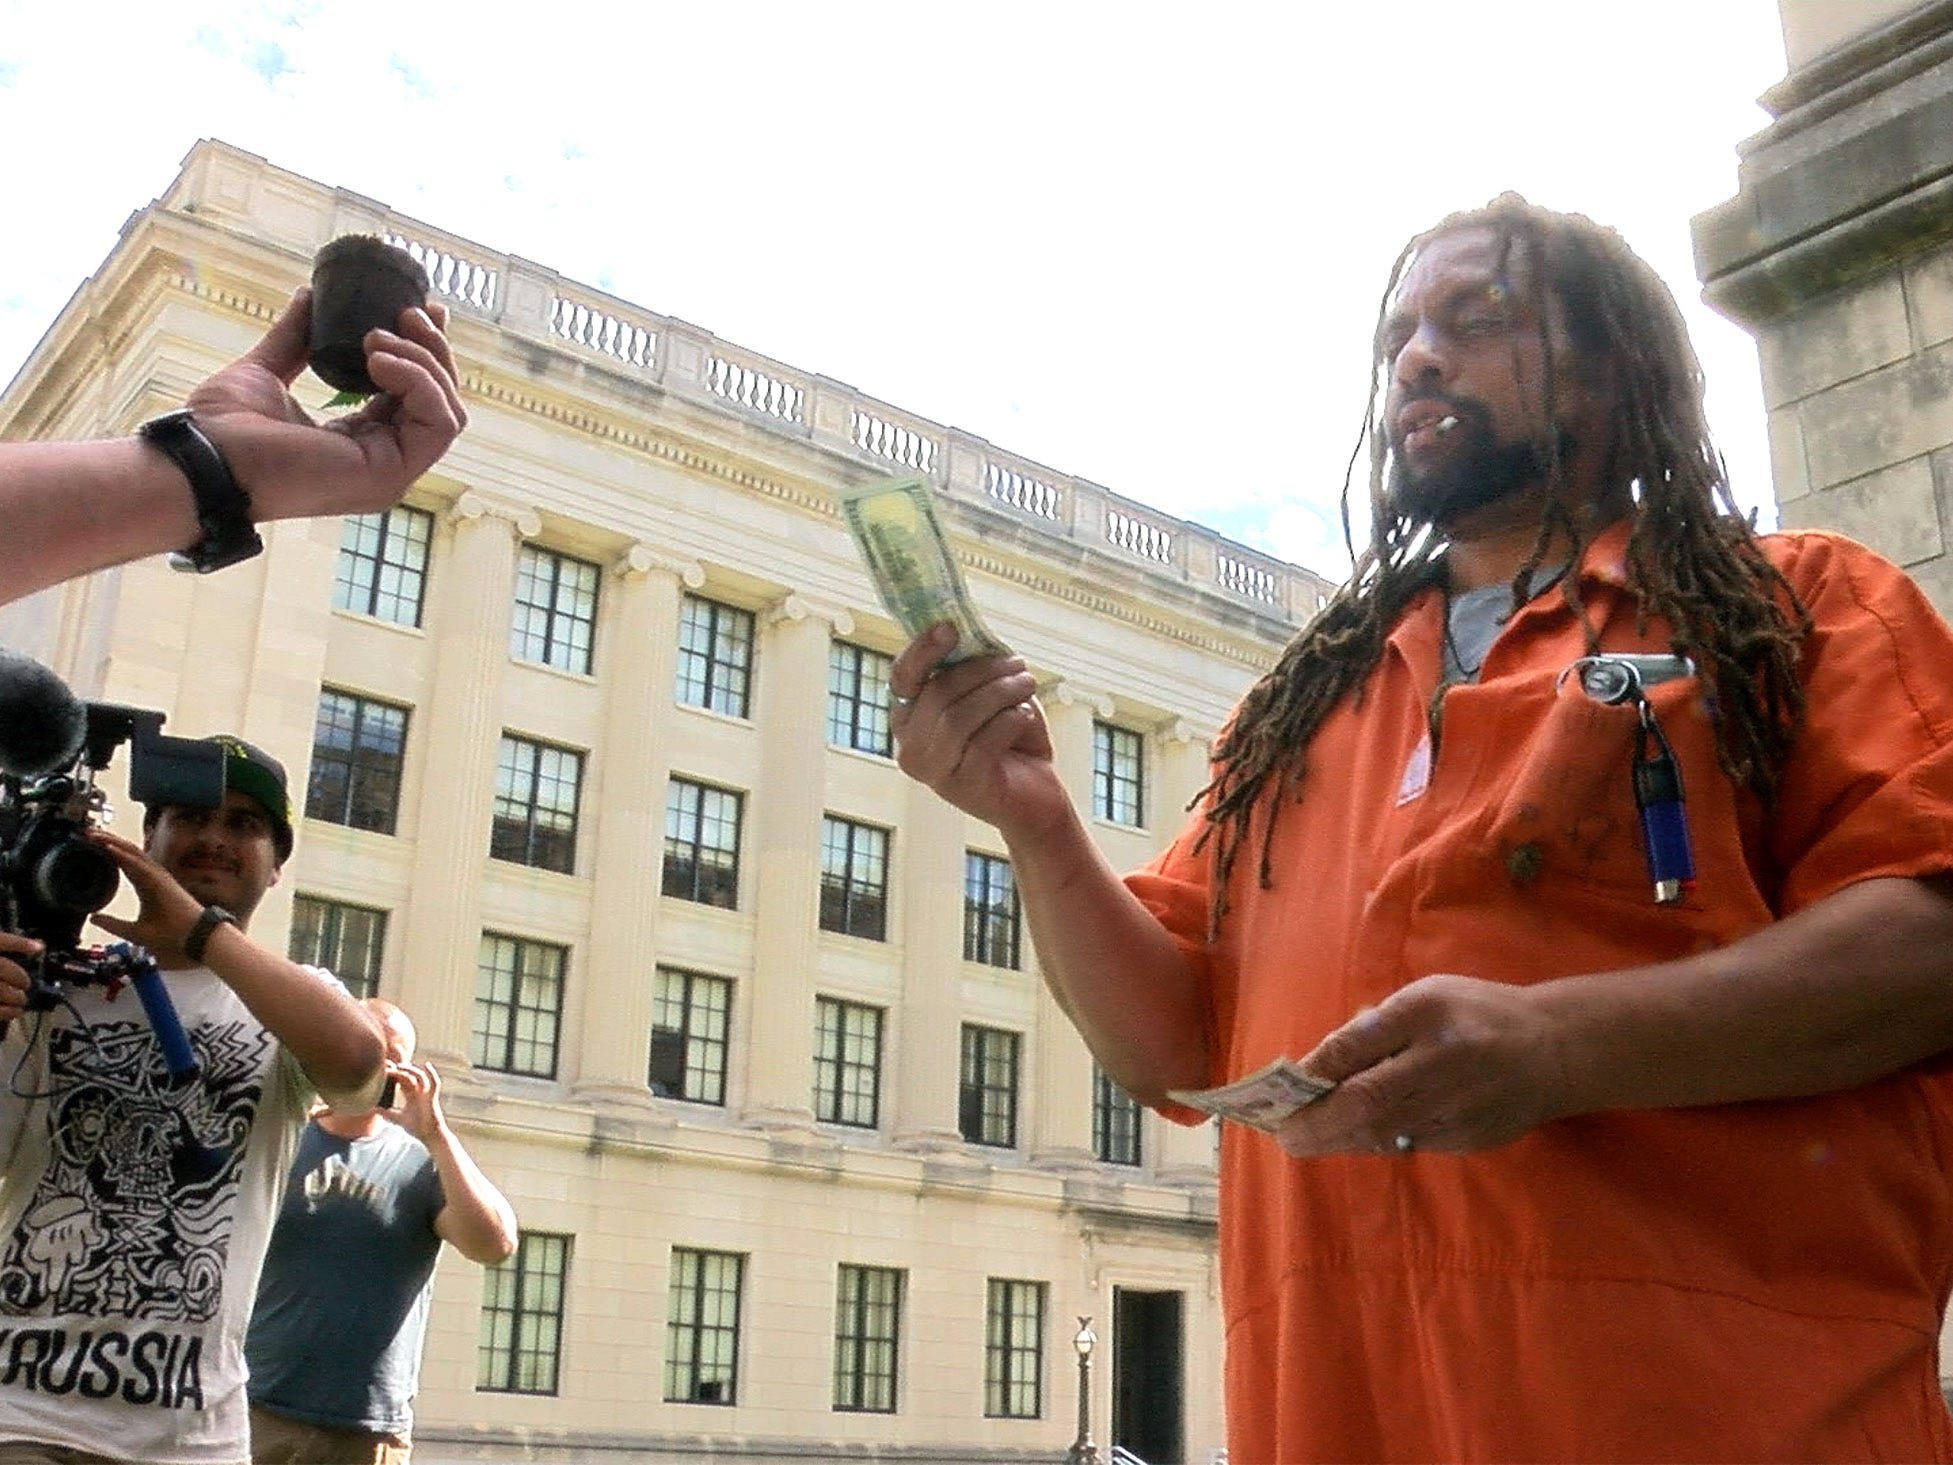 Ed Forchion, known best as NJ Weedman, sells a marijuana plant outside the Statehouse Annex on West State Street in Trenton Thursday, September 27, 2018.  He billed this as his boldest stunt - selling marijuana outside the Statehouse while daring police to arrest him.